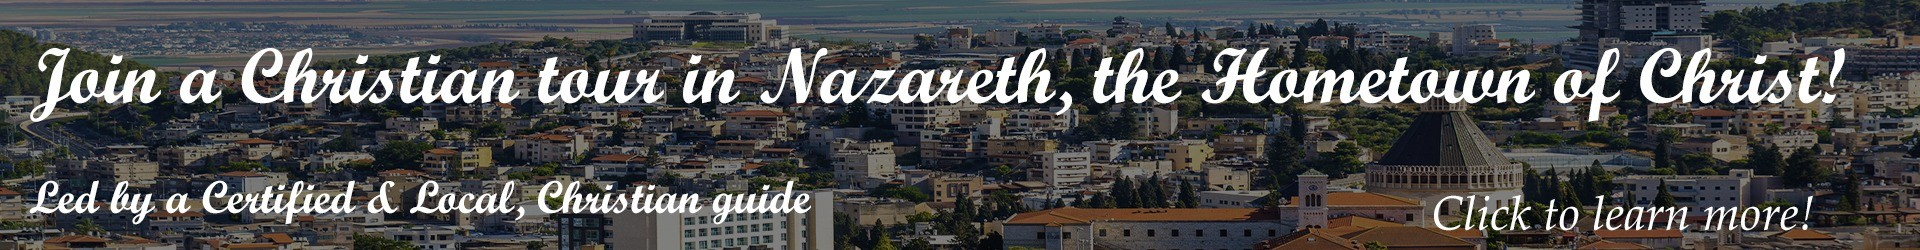 christian tour in Nazareth | Learn more and book now!